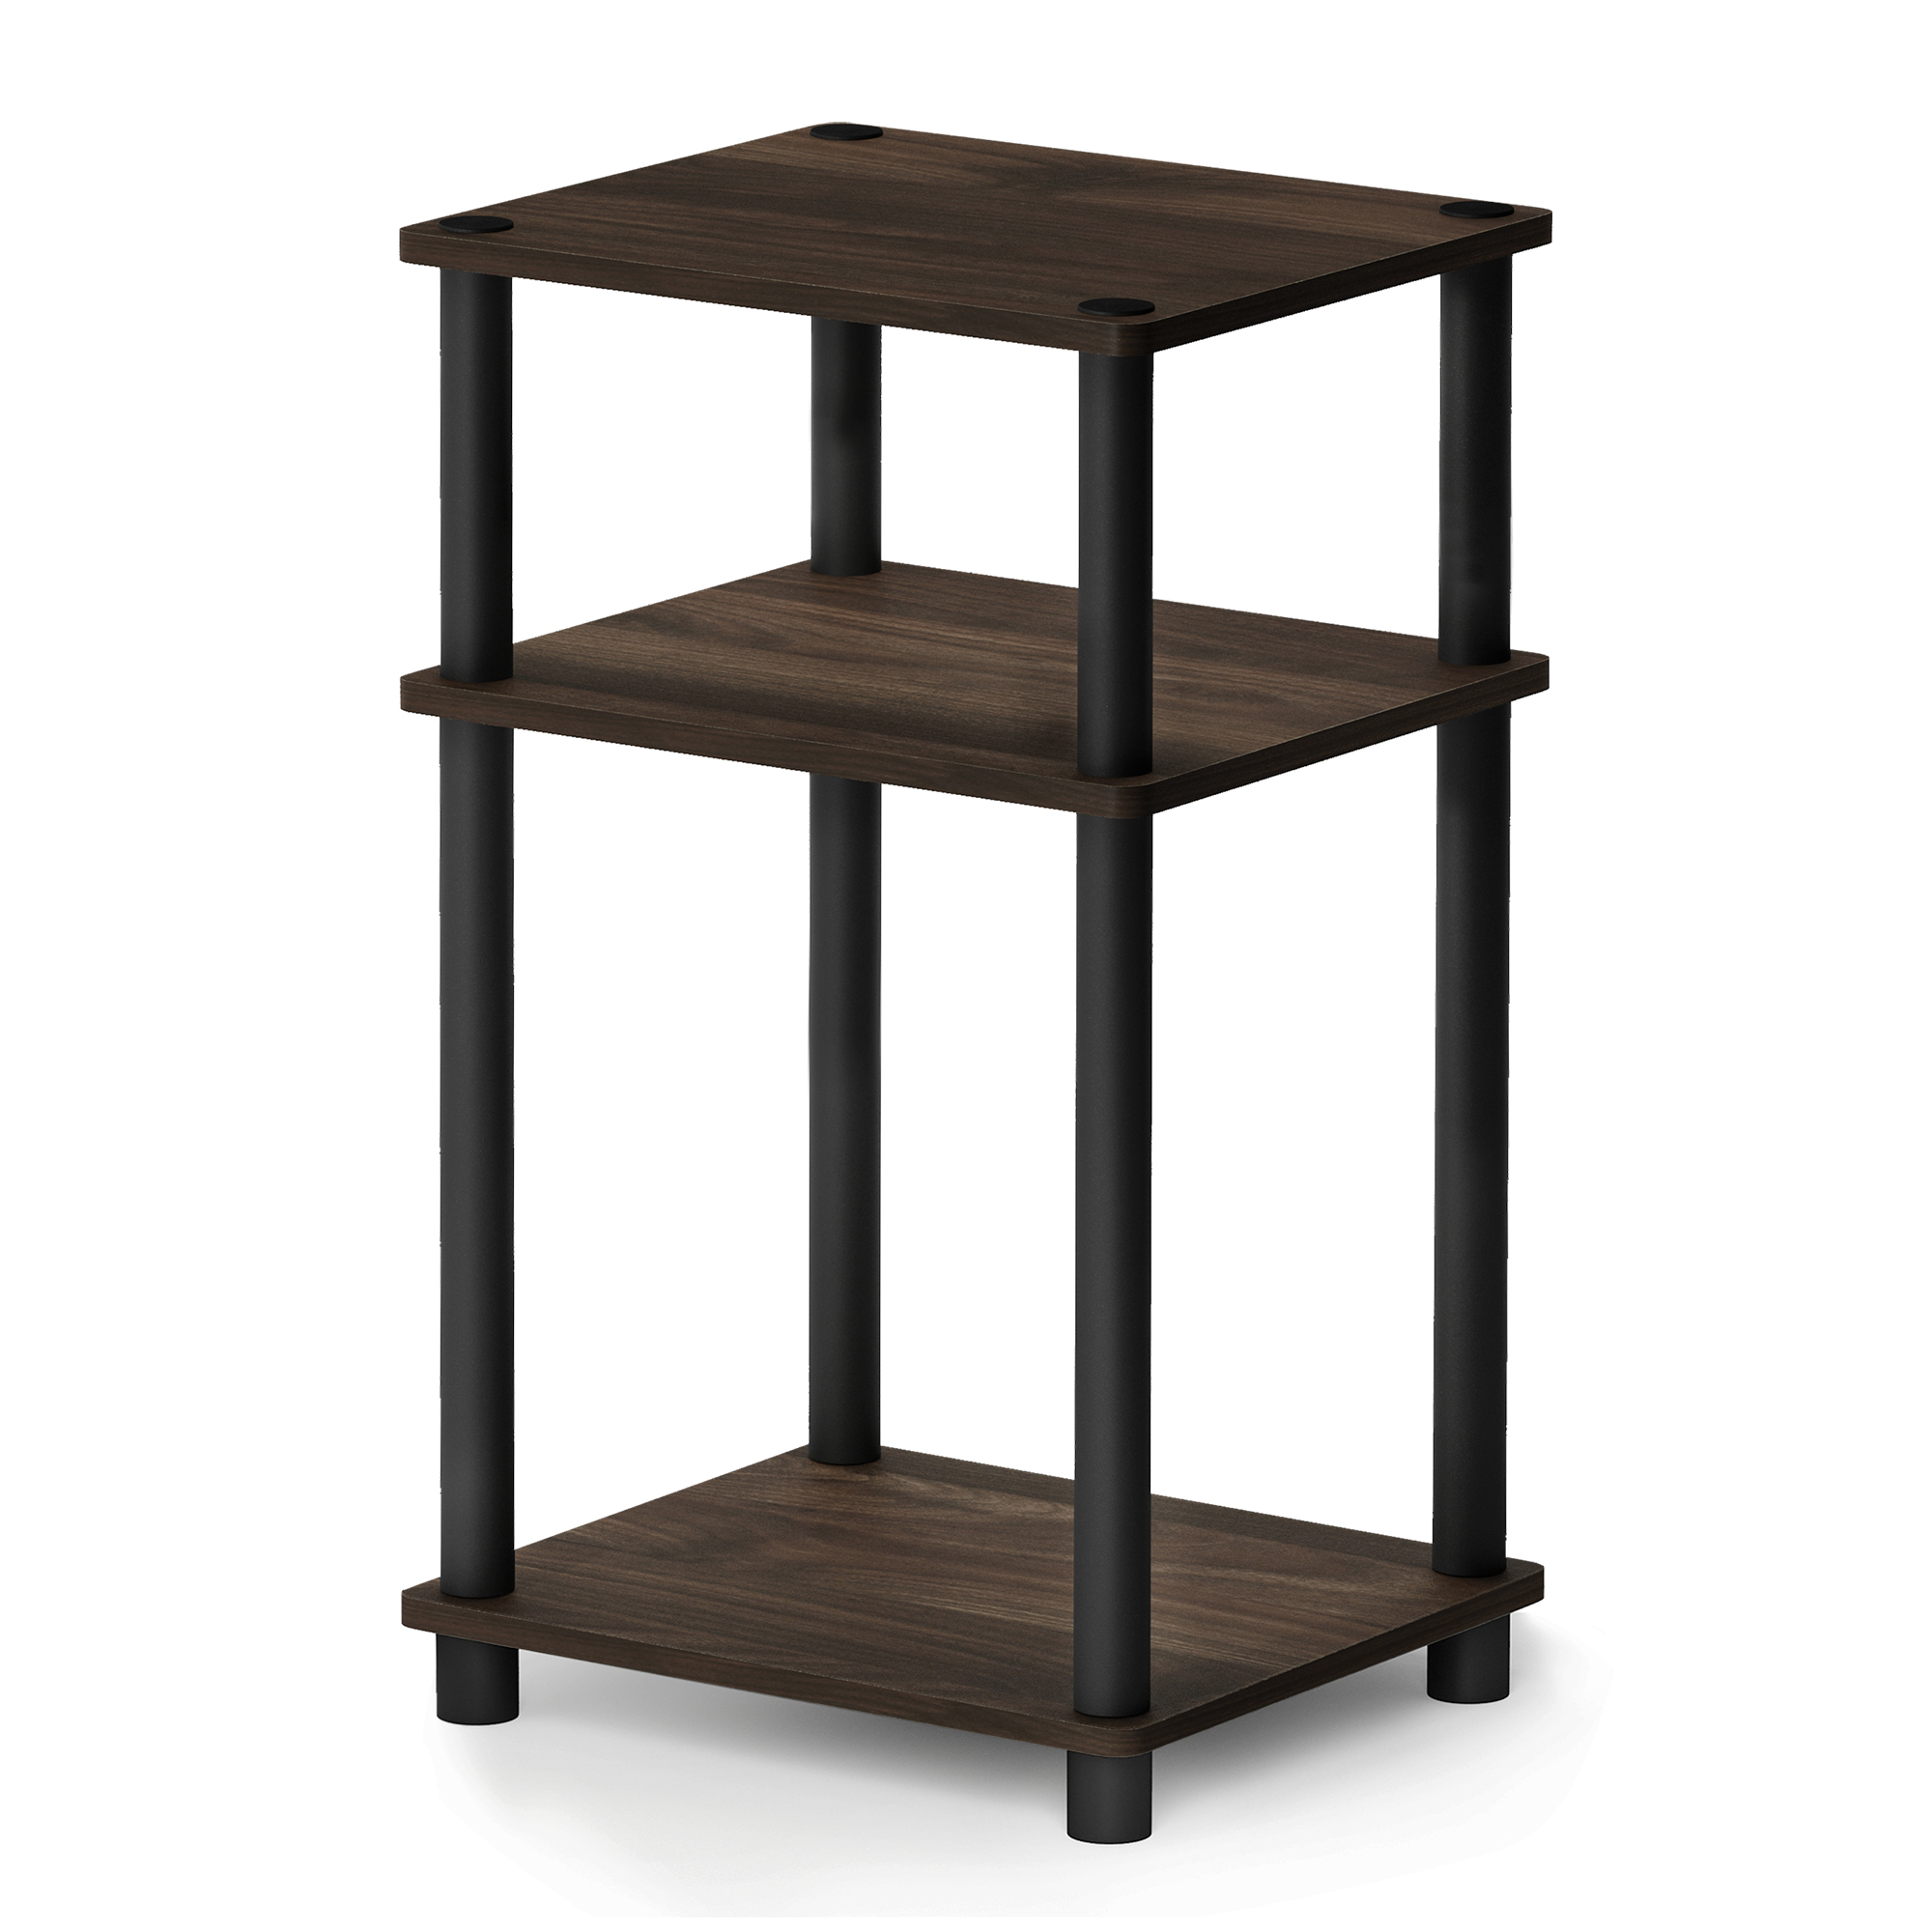 Furinno Just 3-Tier Turn-N-Tube End Table, Columbia Walnut/Brown